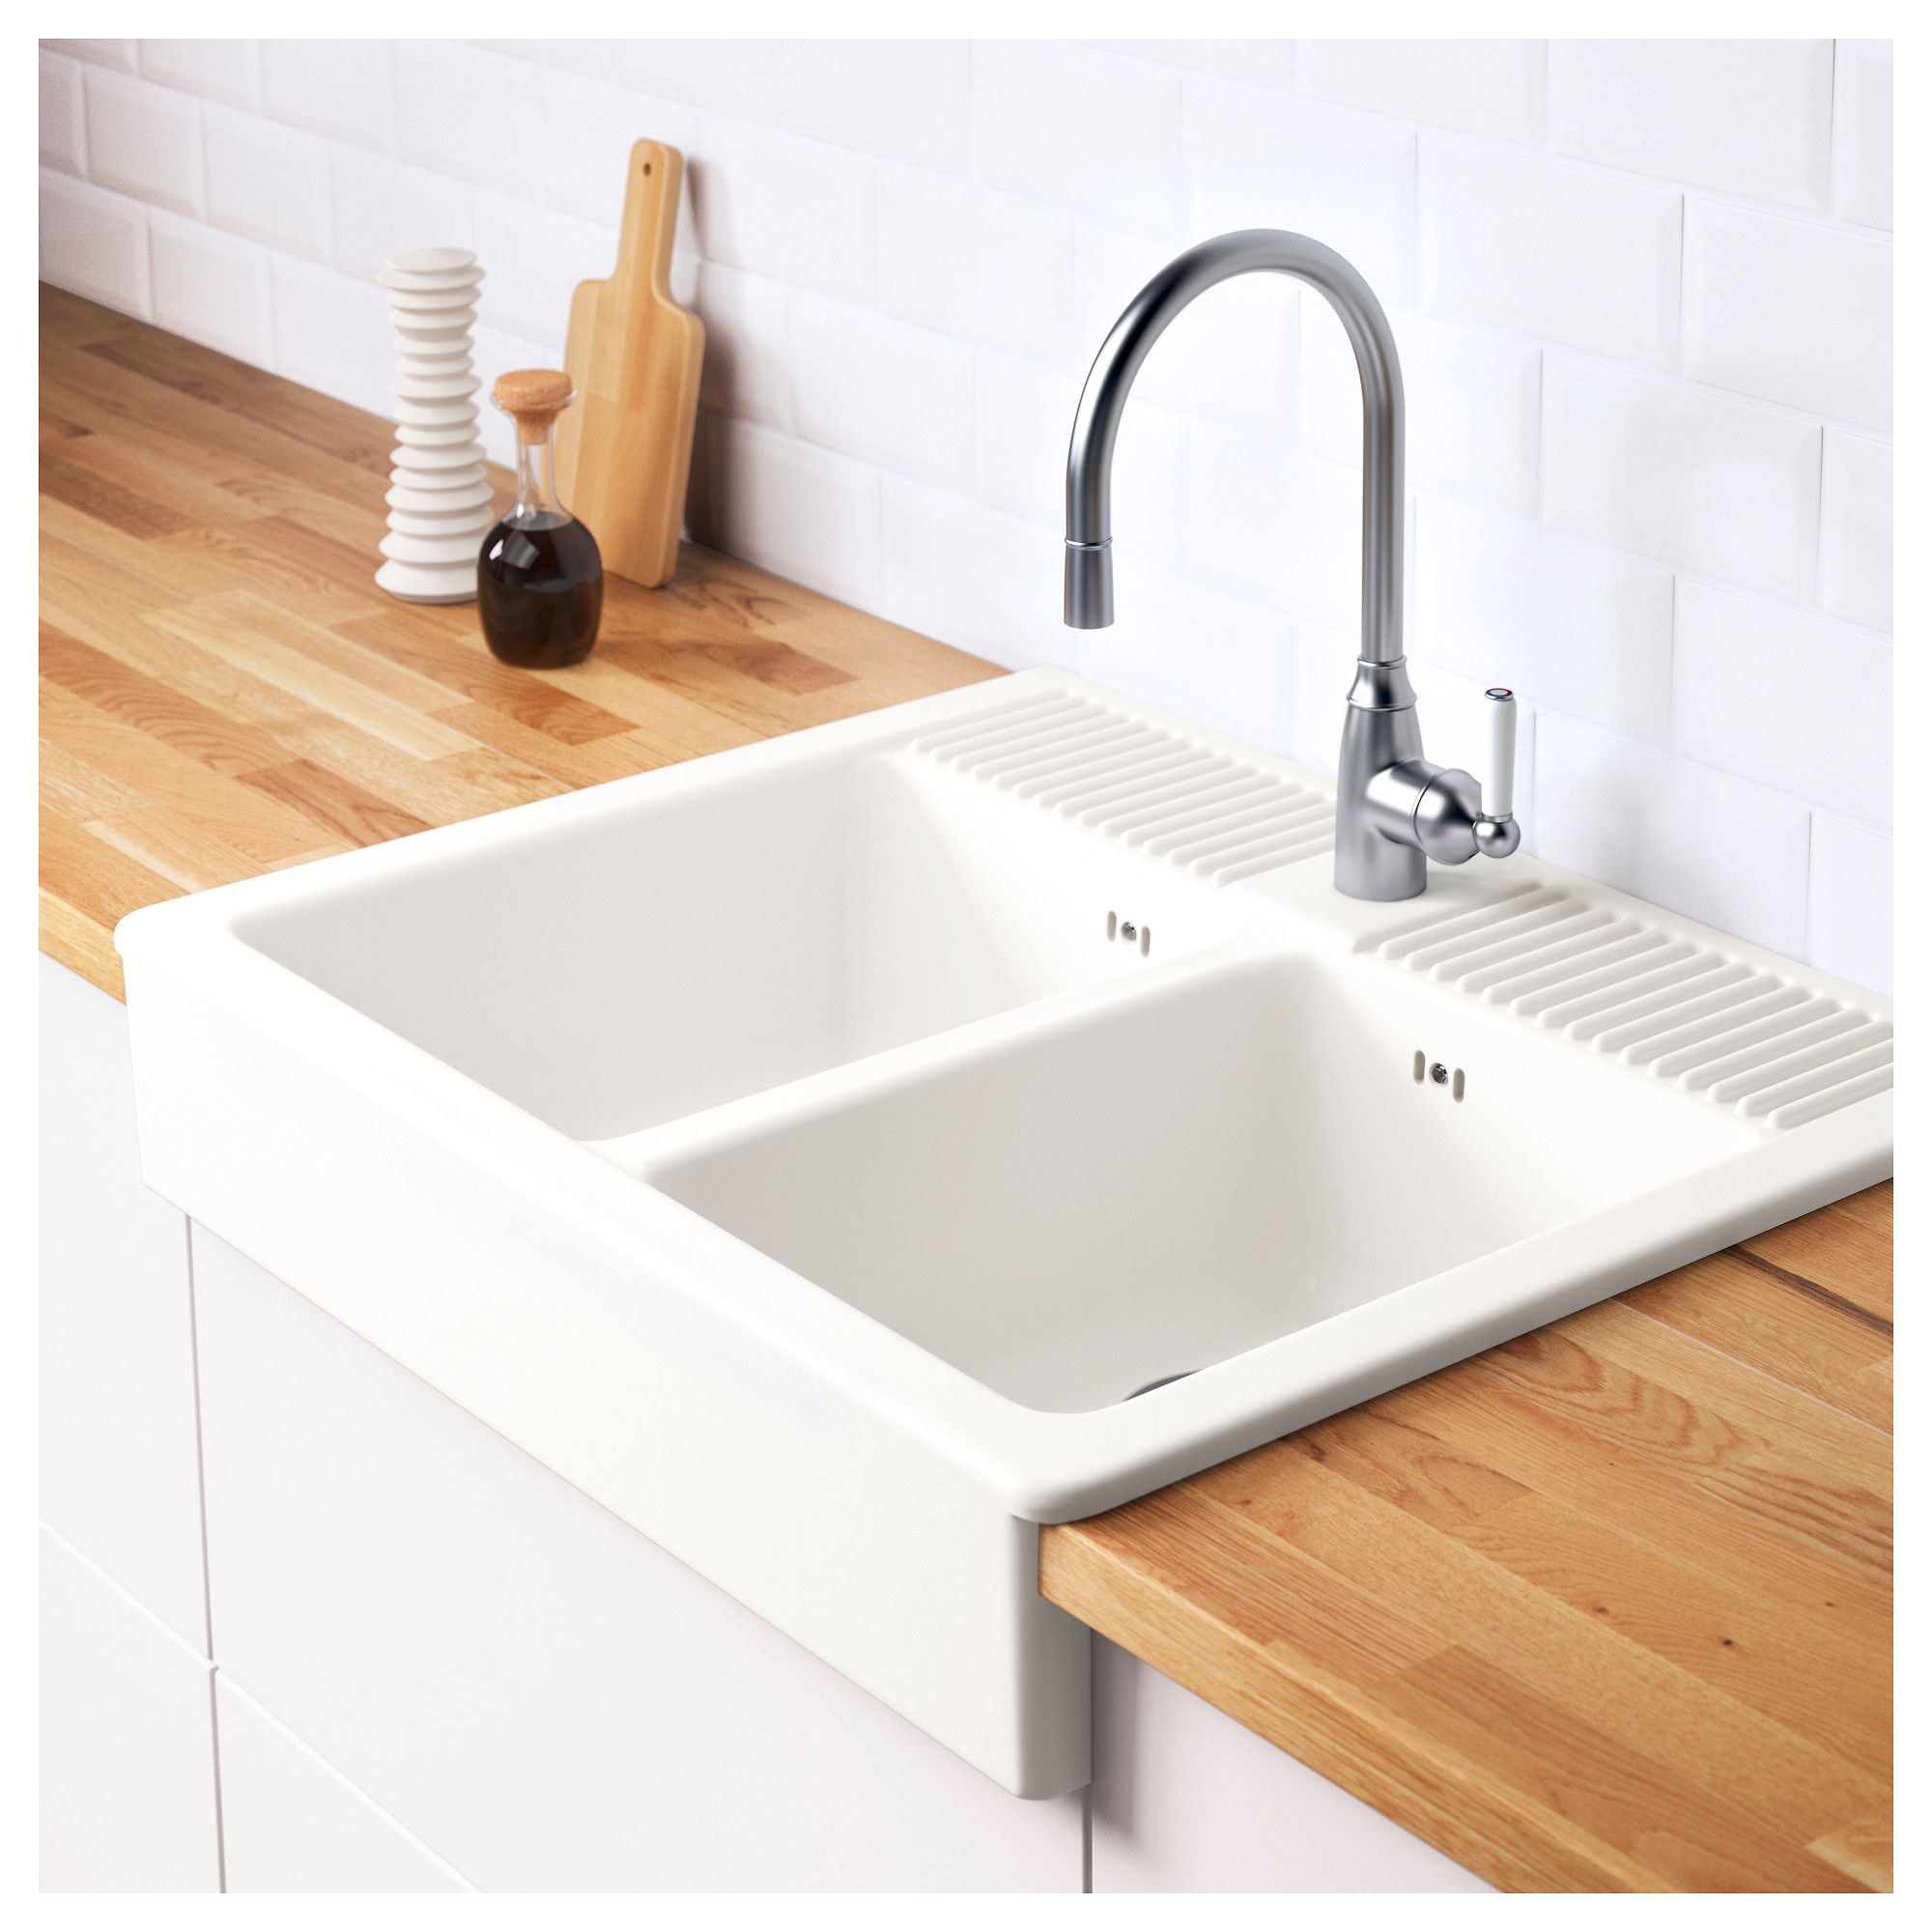 Ikea Farmers Sink: IKEA DOMSJÖ Onset Sink, 2 Bowls 25 Year Guarantee. Read